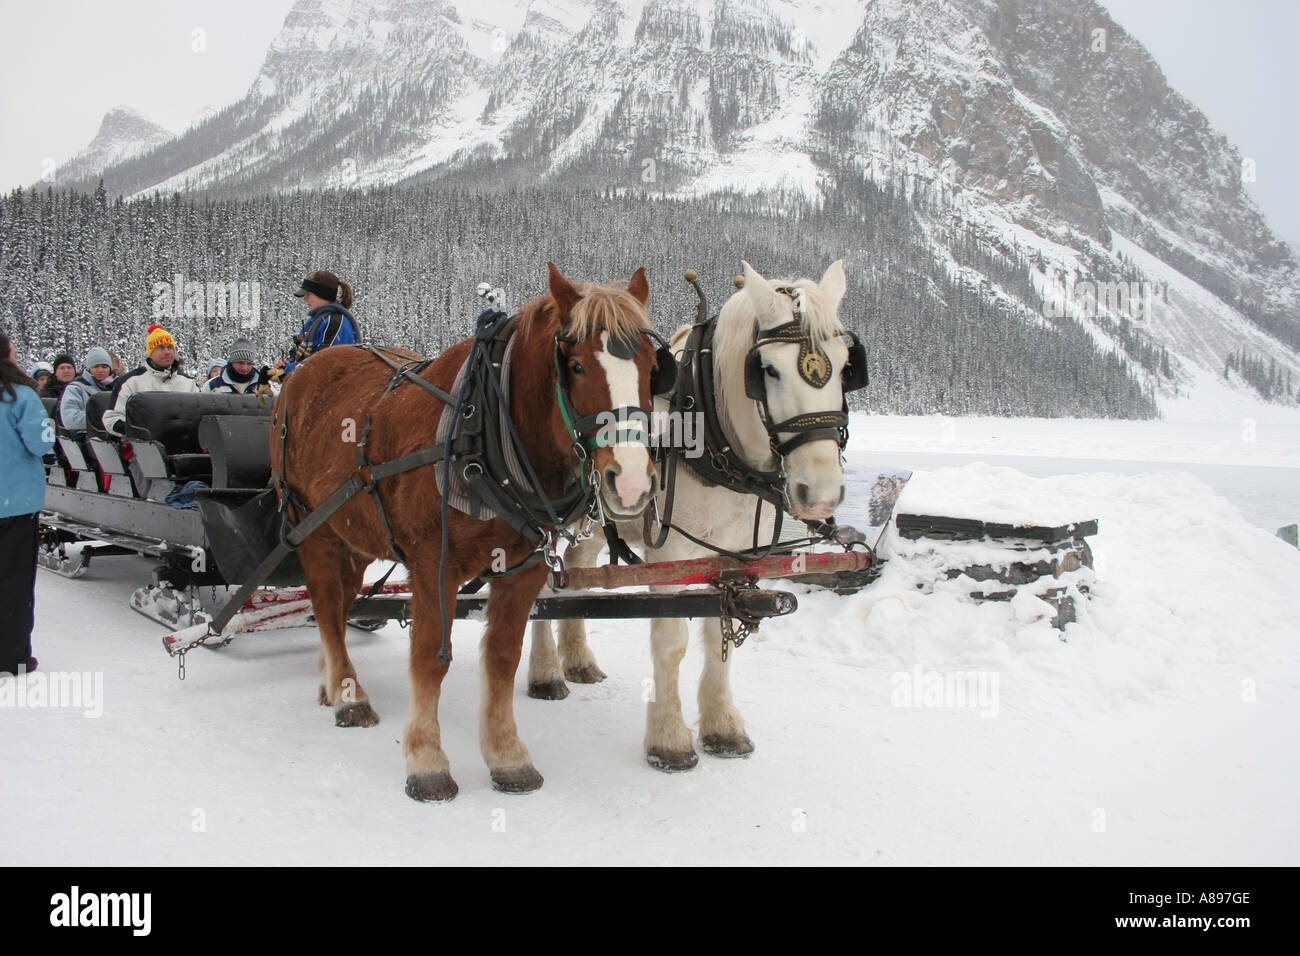 Winter scene with horse drawn sleigh at Fairmont Chateau Lake Louise in Banff National Park Alberta Canada Stock Photo